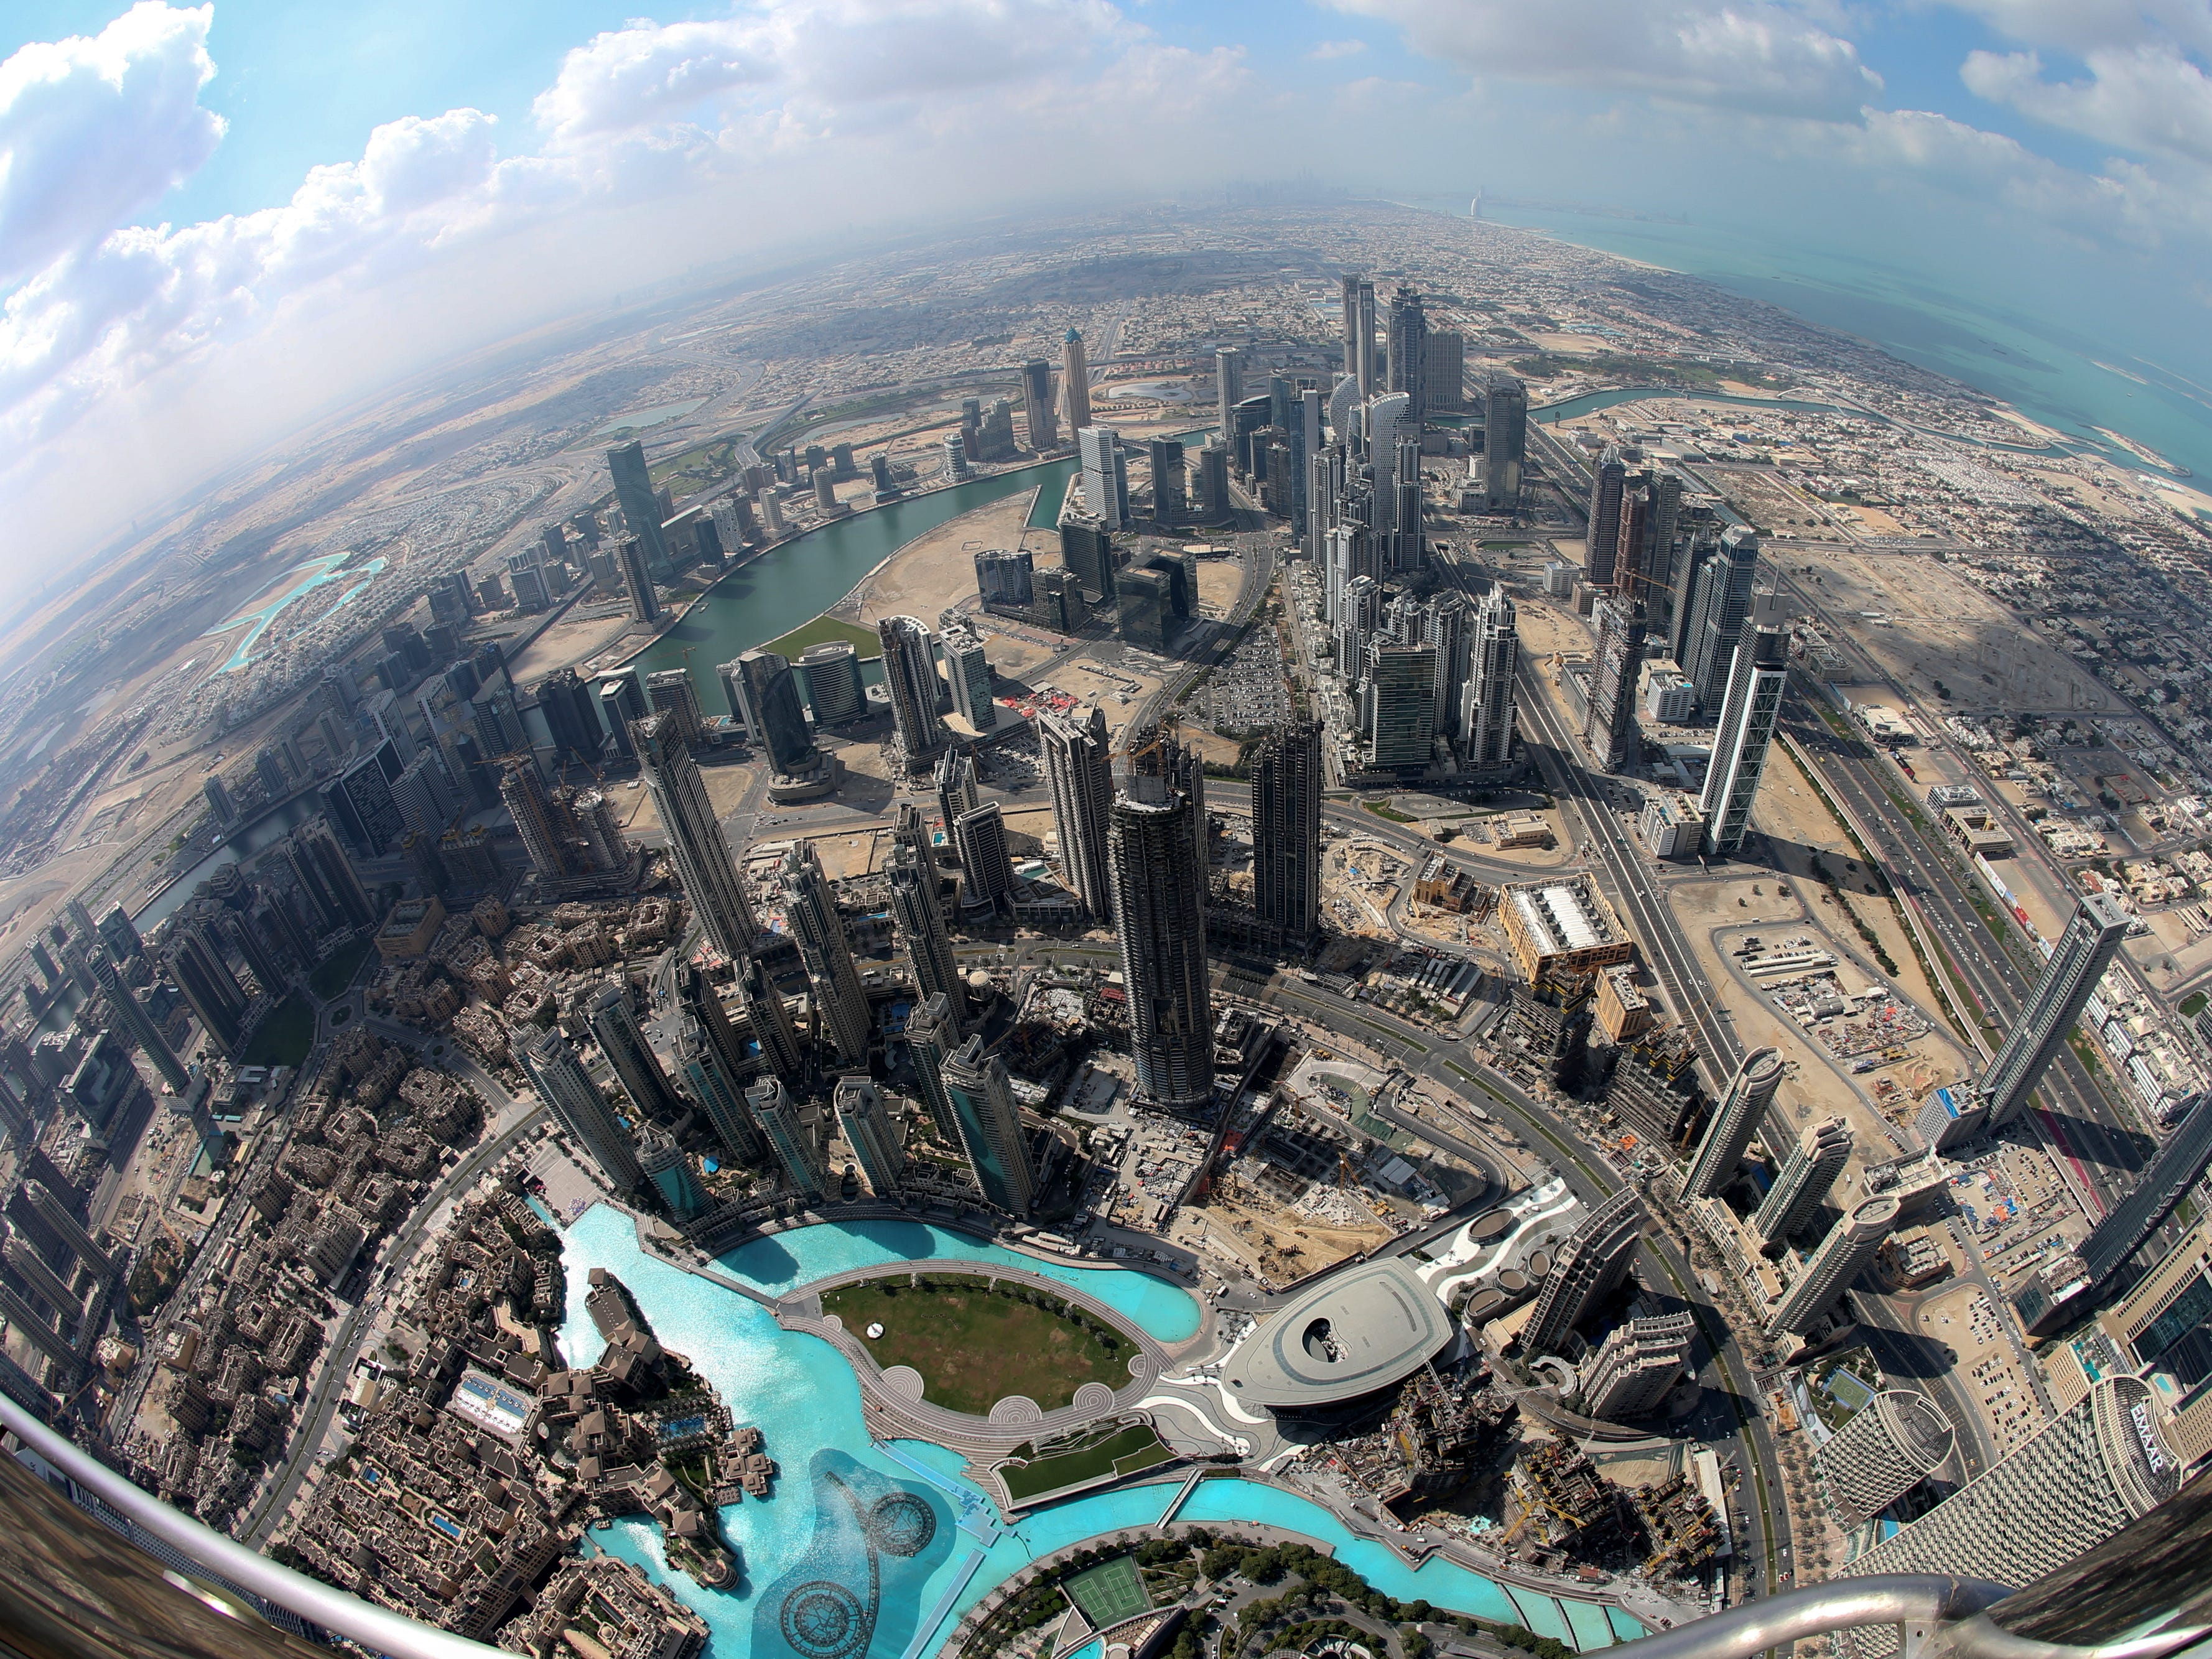 epa07367627 A picture taken with a fisheye lens shows areas close to the world's tallest building Burj Khalifa as seen from the the new highest lounge in the world at Burj Khalifa in Dubai, United Arab Emirates, 13 February 2019. Ahmad Al Falasi, Executive Director Emaar Properties announced during media briefing the opening of highest lounge in the world at Burj Khalifa located on the 152, 153, and 154 floors at 575 metres, with each have its distinctive settings assuring never before seen views of the city.  EPA-EFE/ALI HAIDER ORG XMIT: XAH051